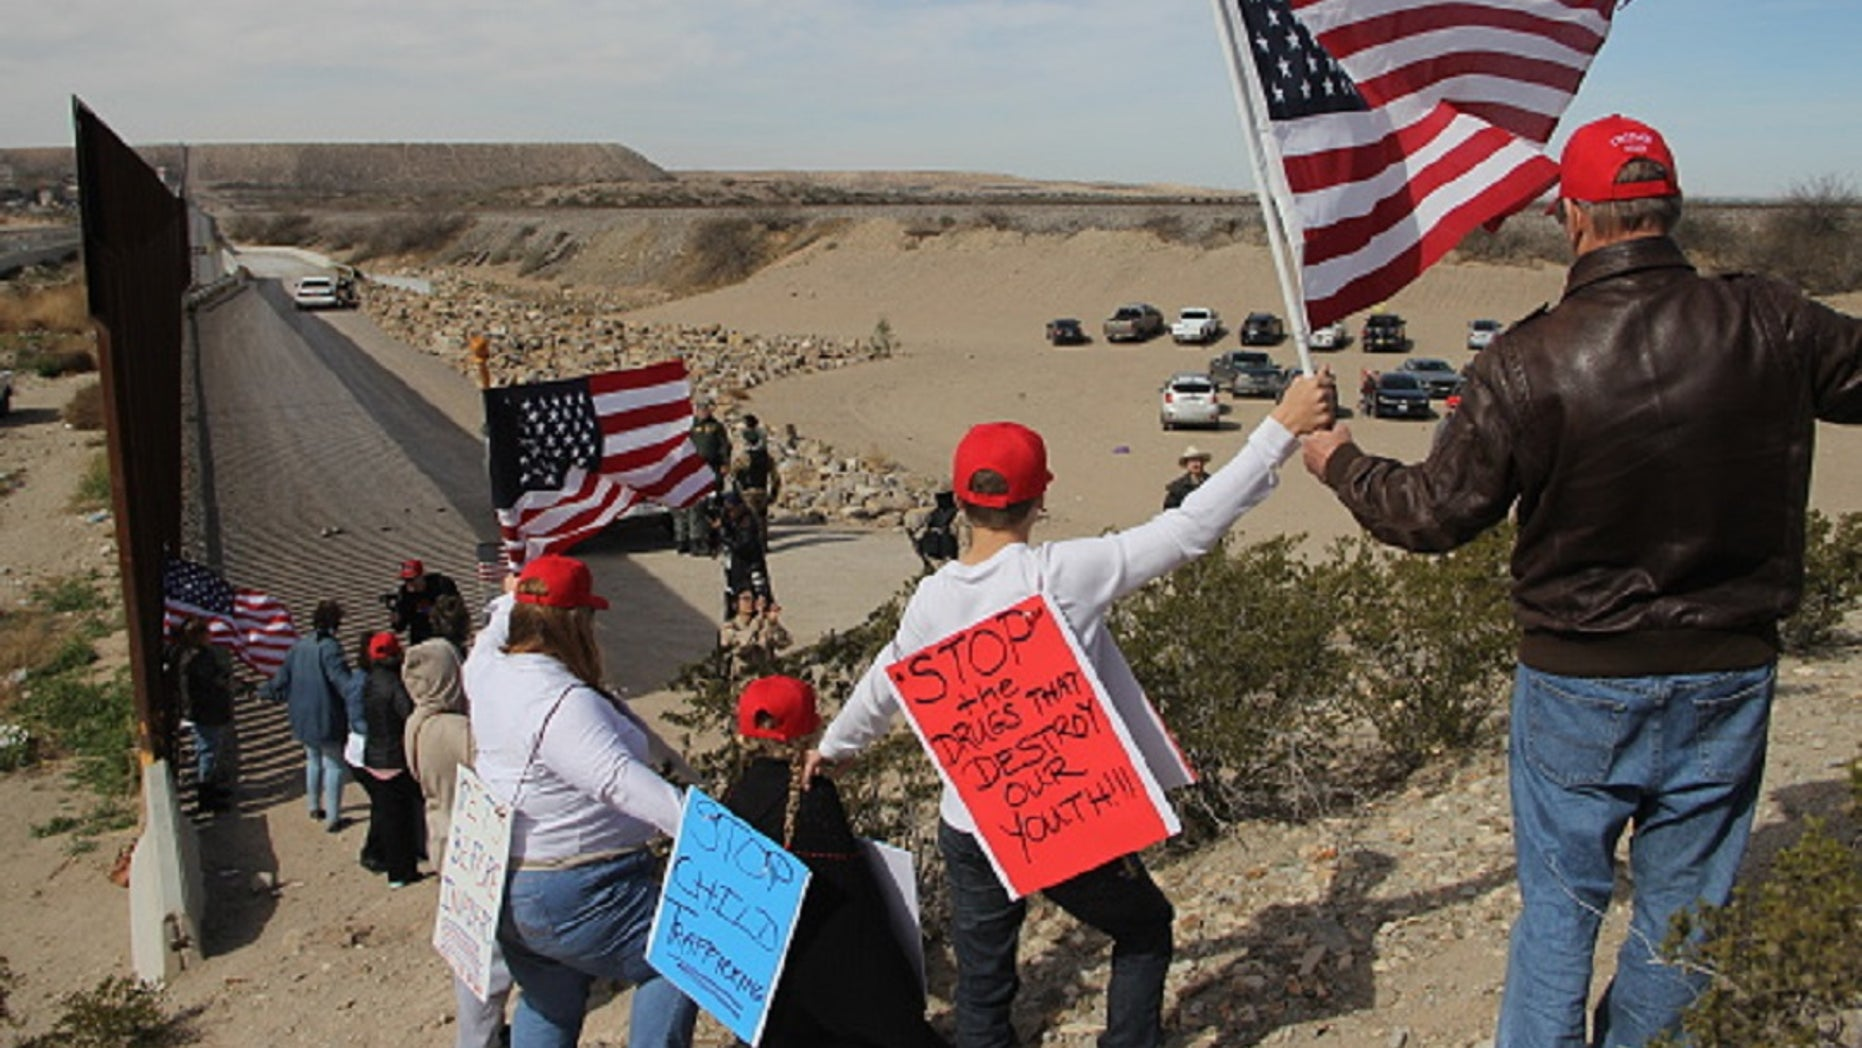 Trump supporters form human wall at southern border